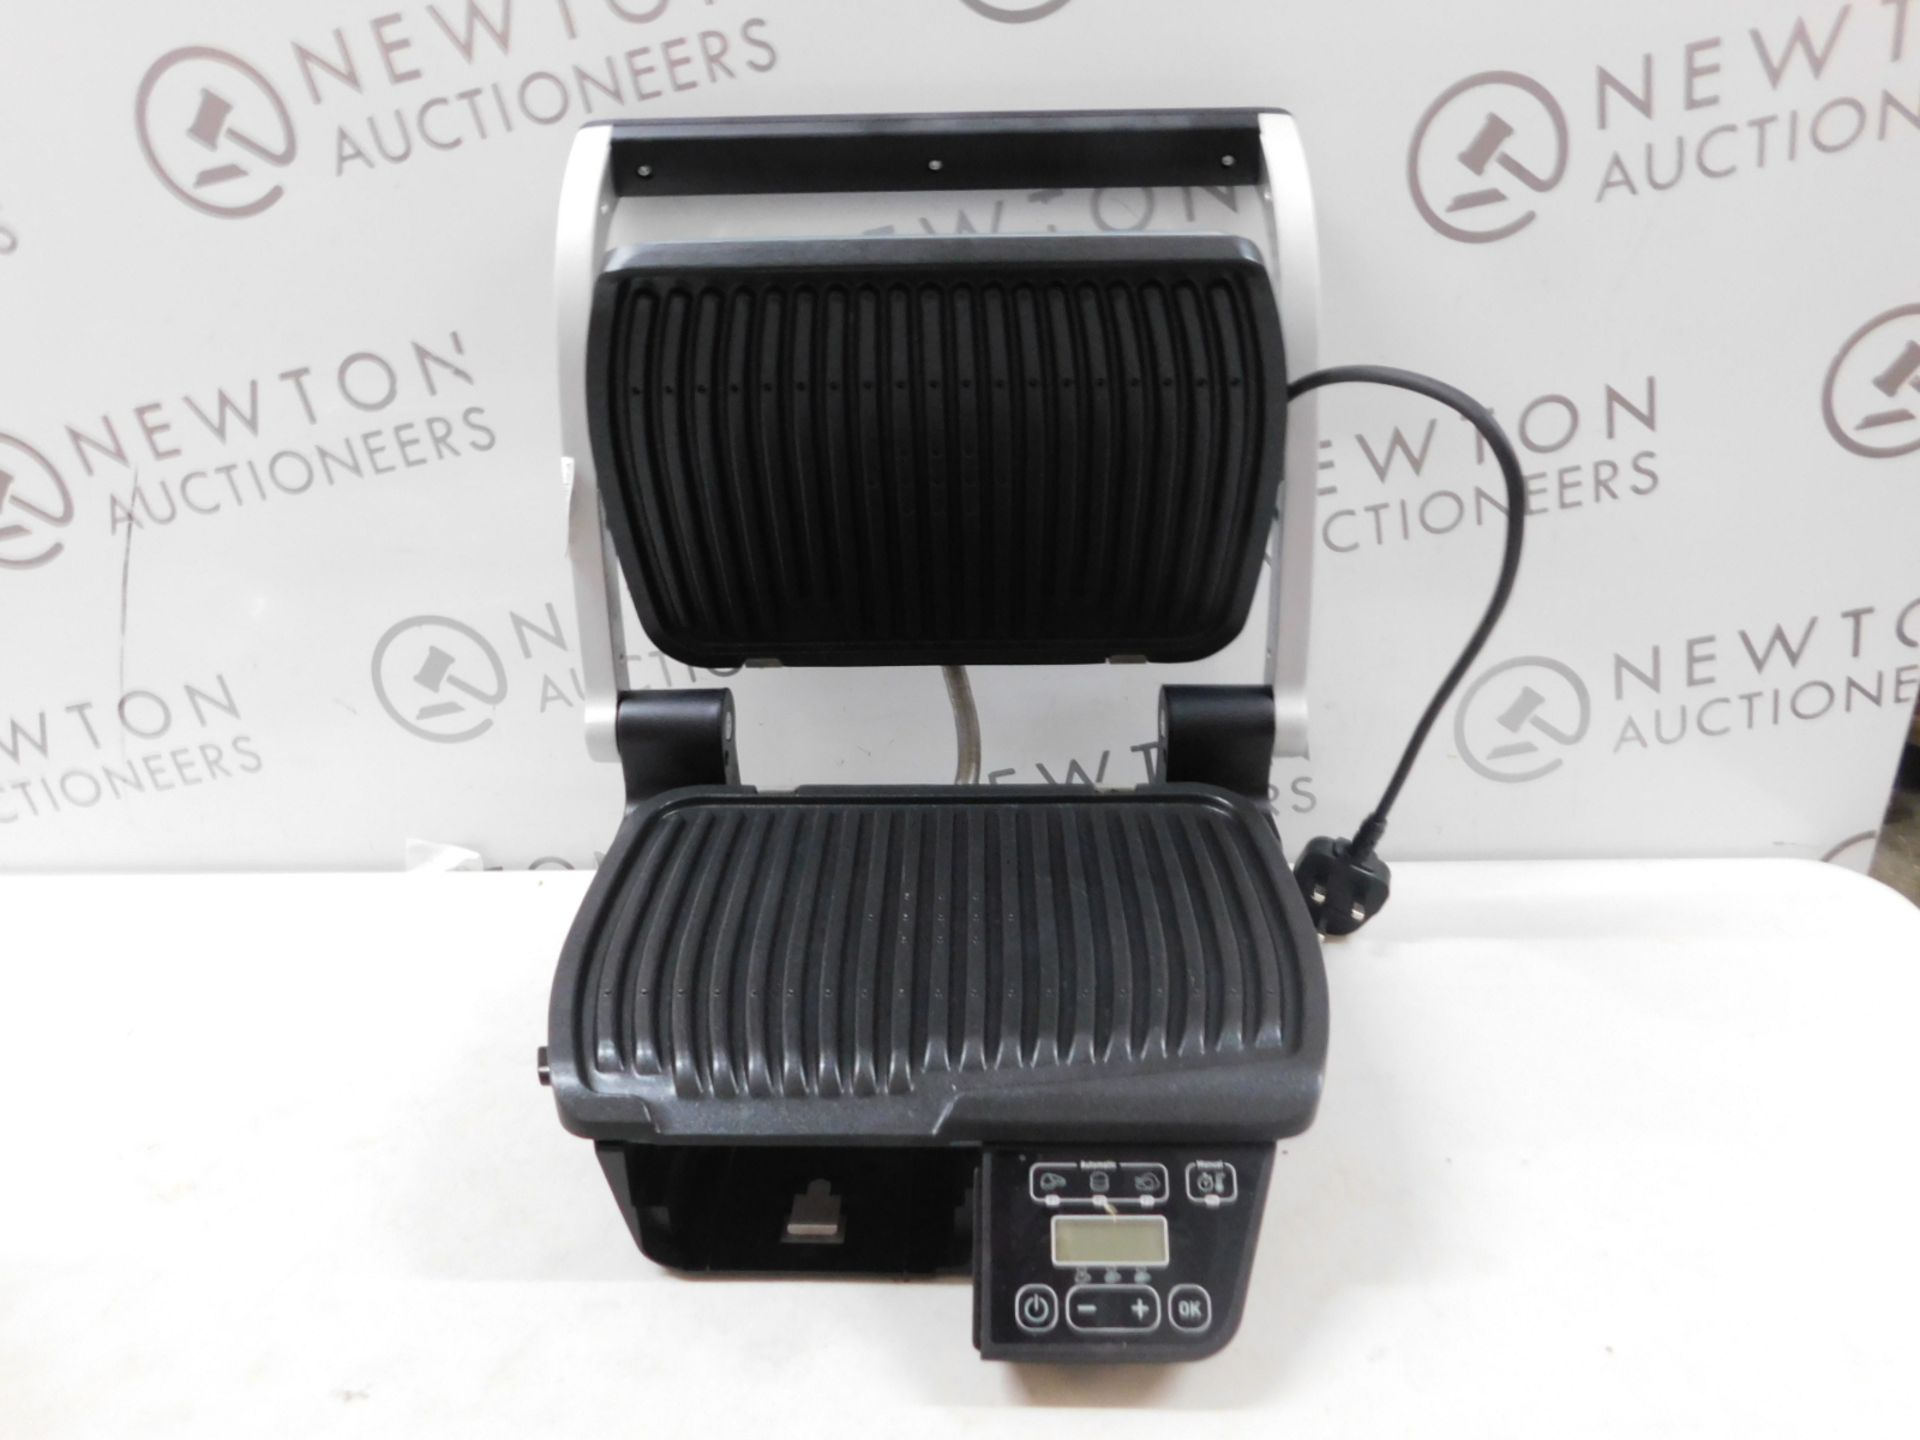 1 TEFAL SELECT GRILL GC740B40 5 PORTION ELECTRIC HEALTH GRILL RRP £199